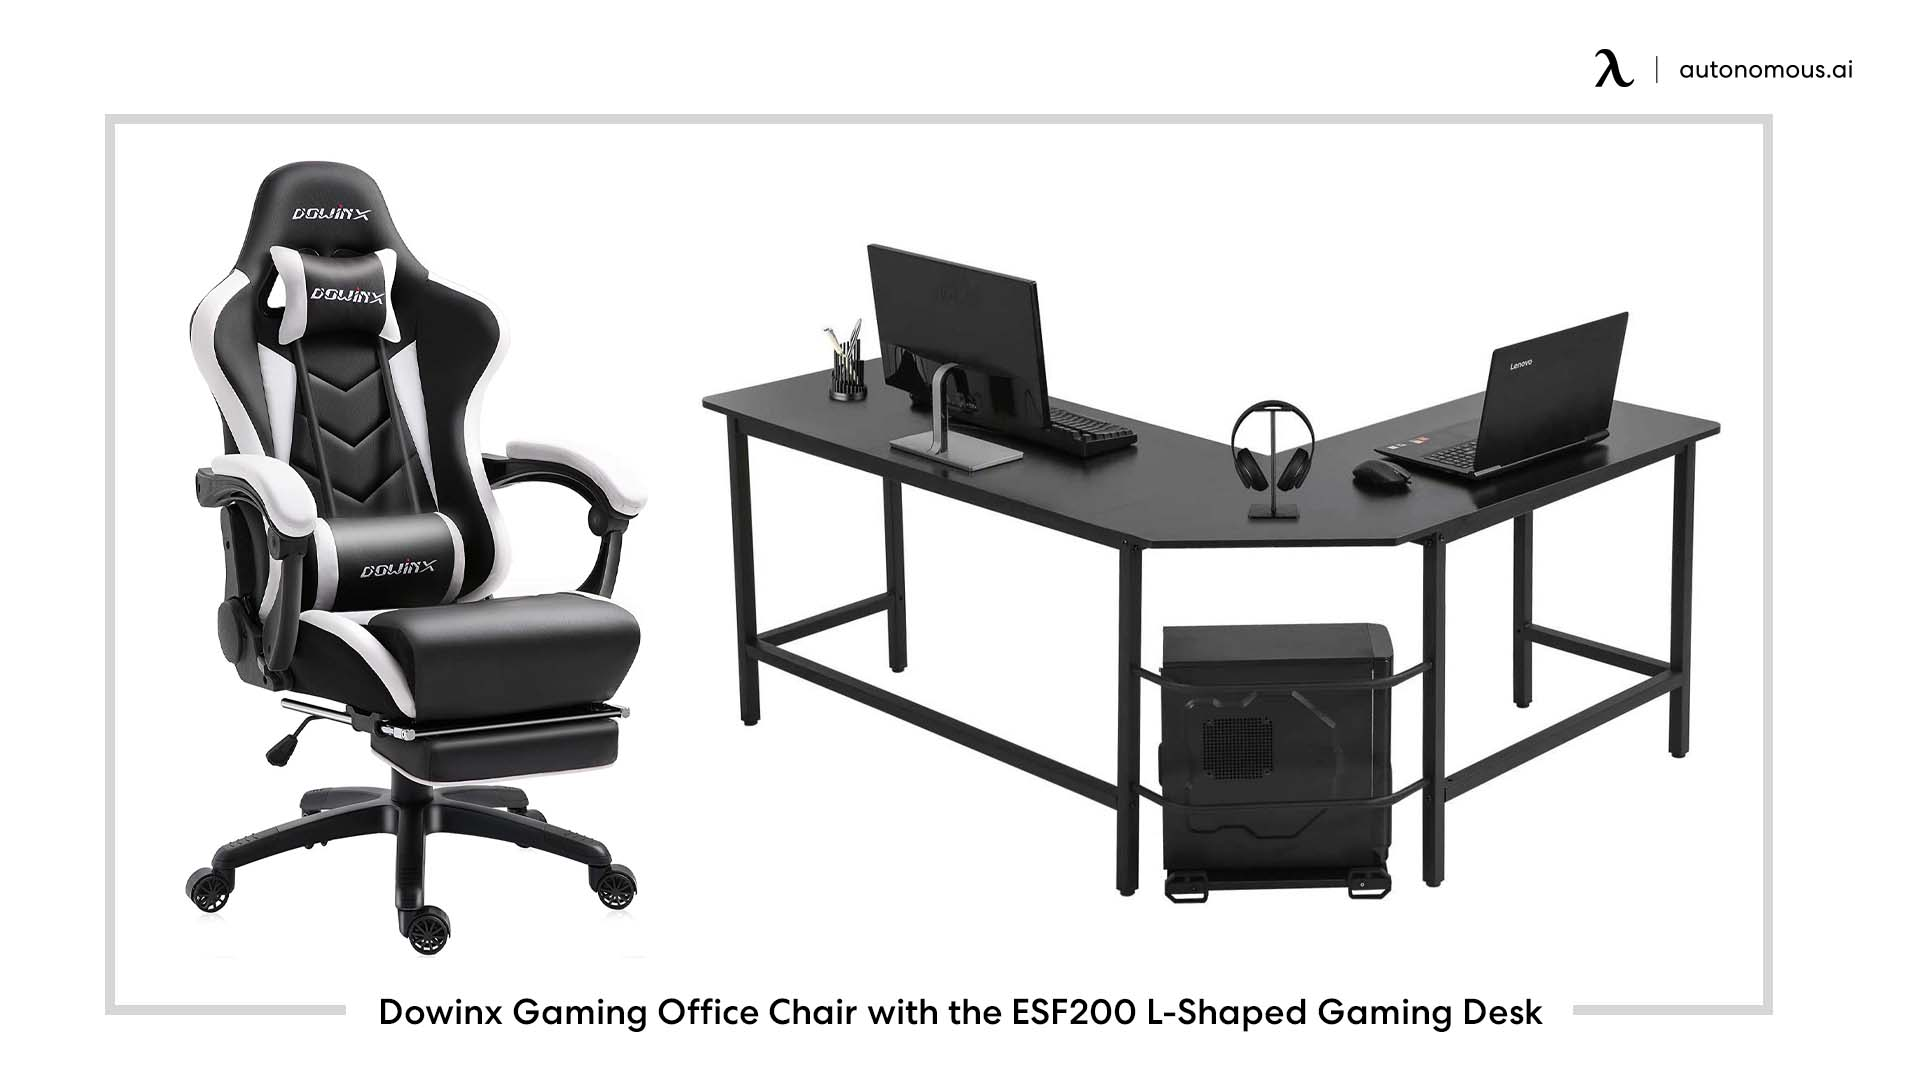 Dowinx Gaming Office Chair with the ESF200 L-Shaped Gaming Desk